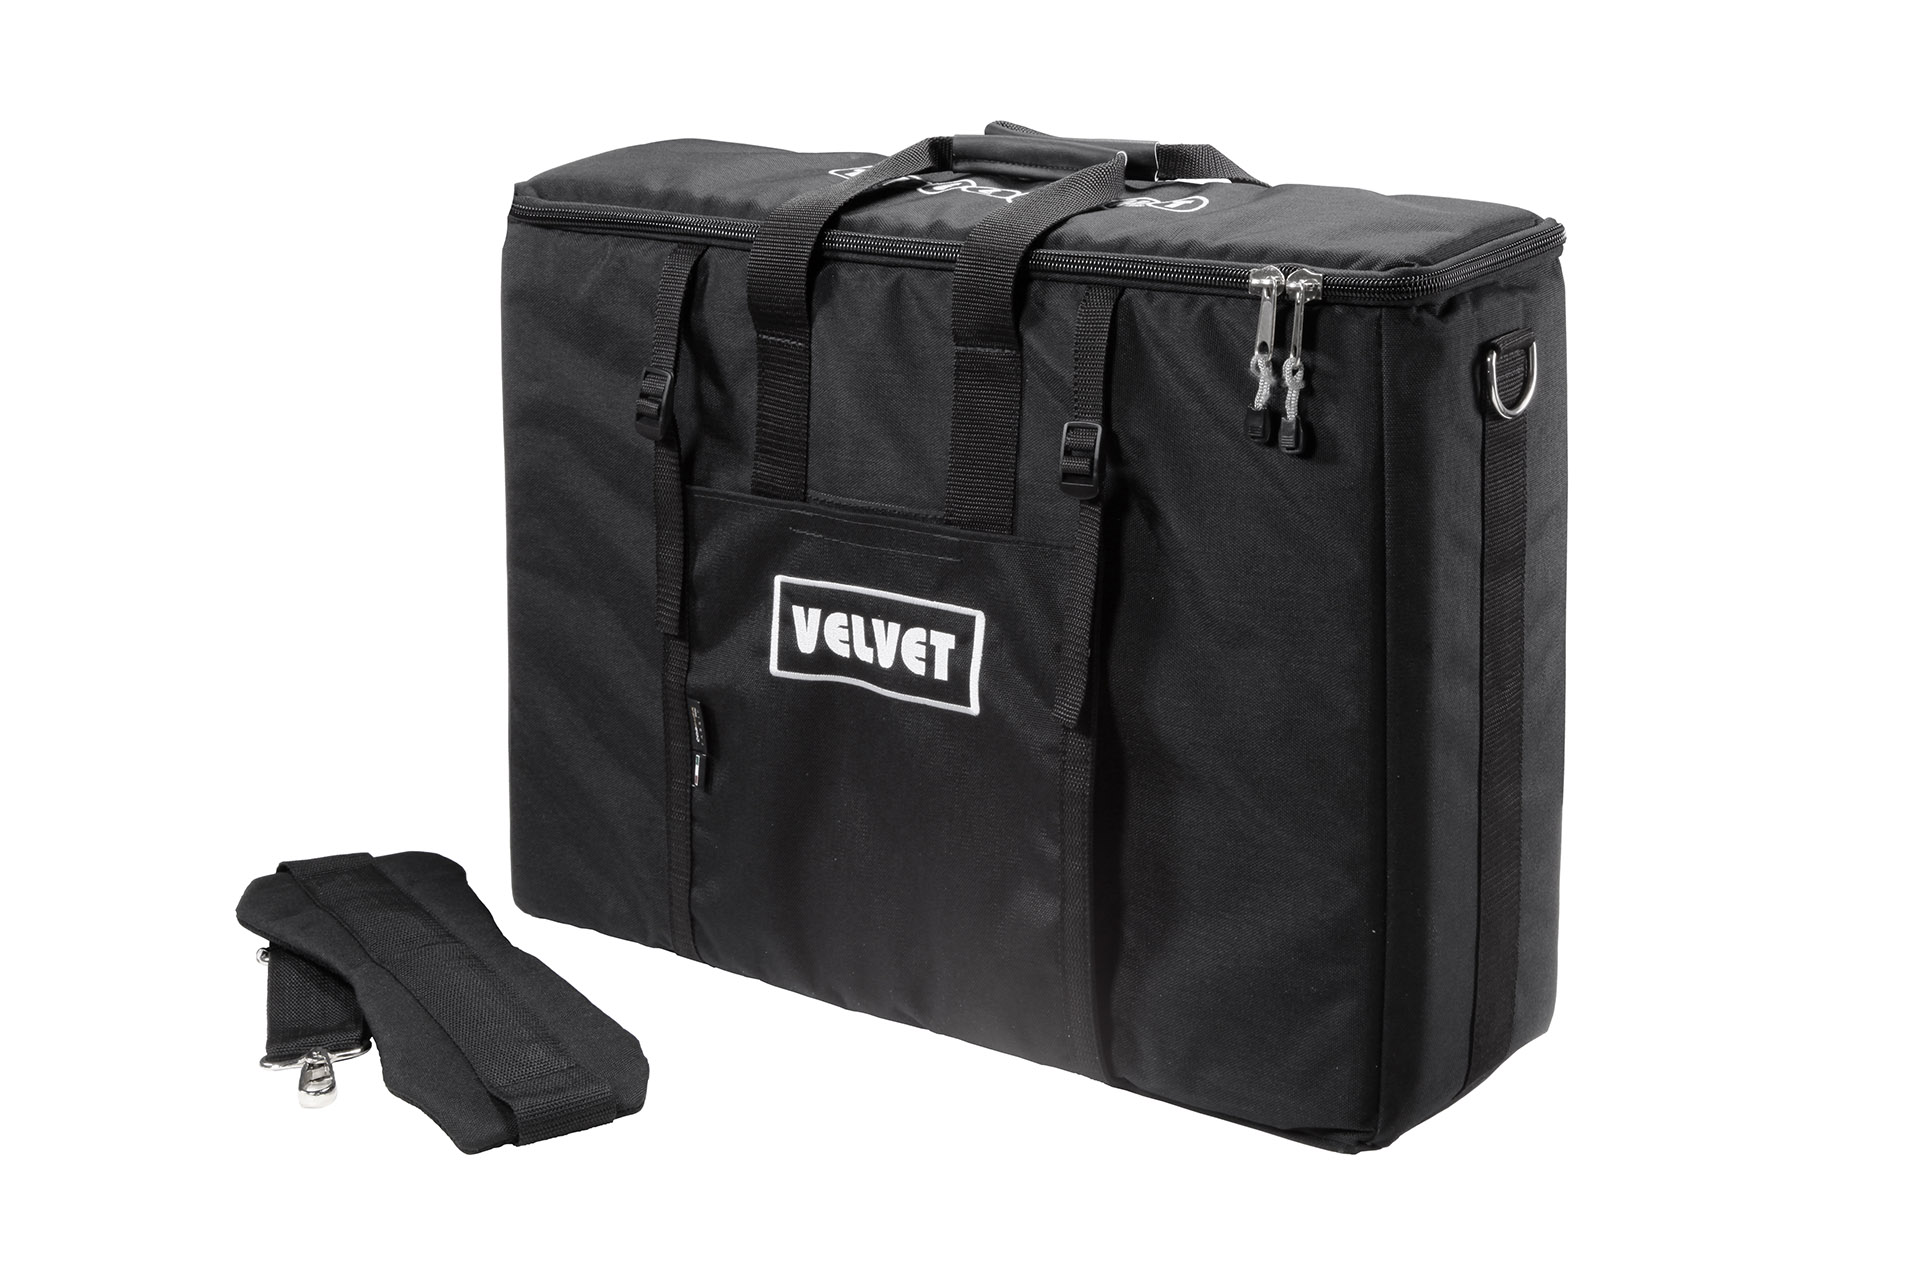 VL1x2-bag Cordura Soft Bag for 2x VELVET 1 Kits